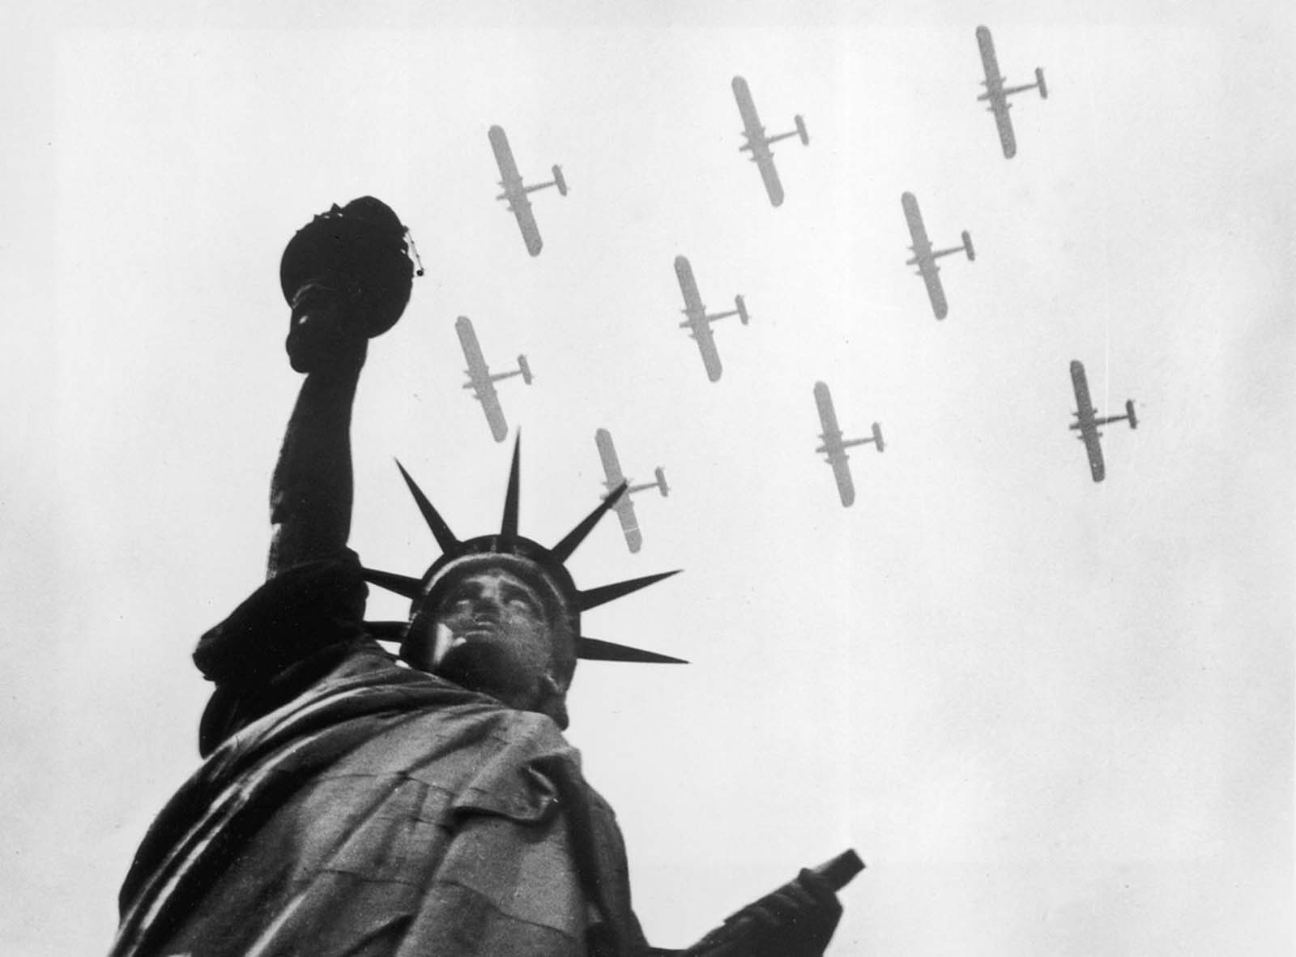 Statue of Liberty pictures with aircrafts